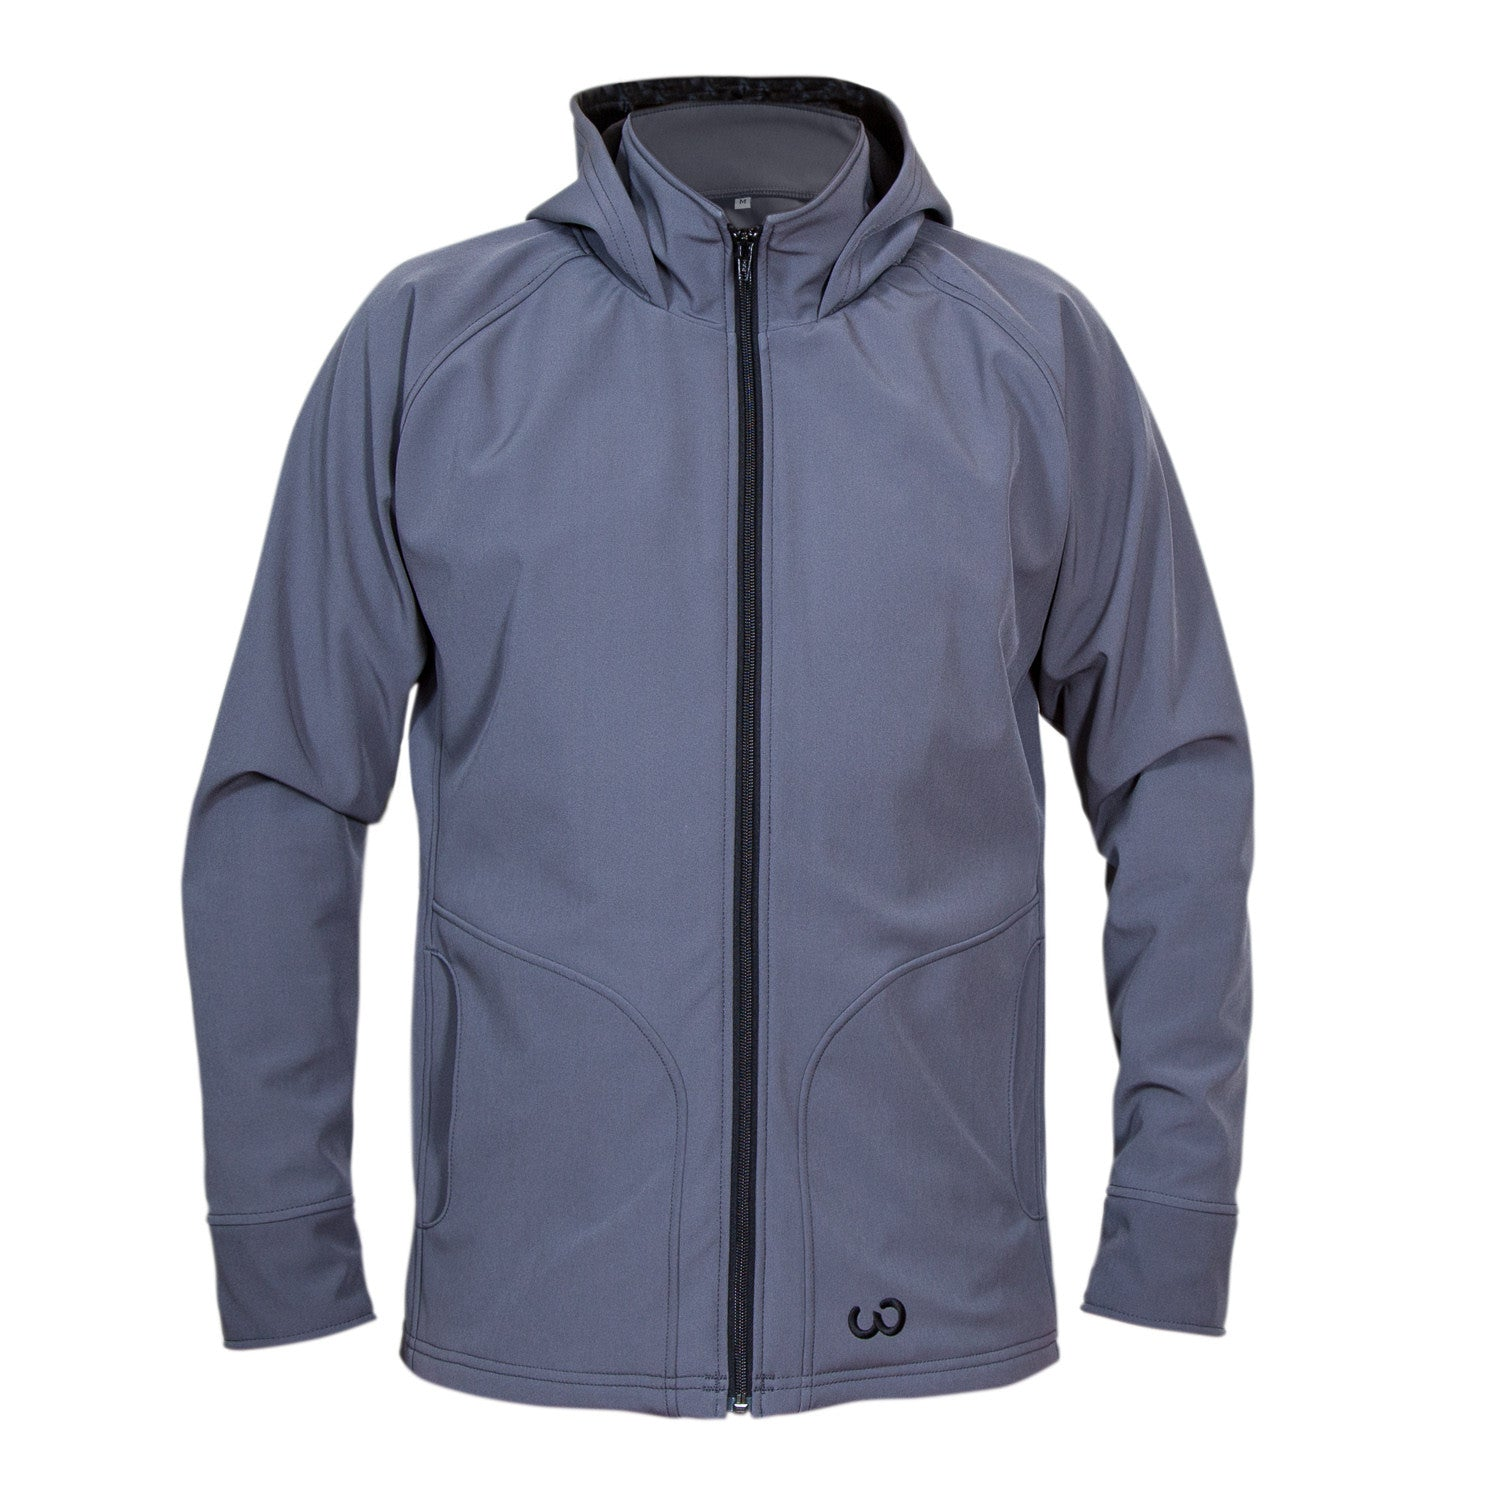 Grey Upcycled Softshell Jacket Apparel - Looptworks